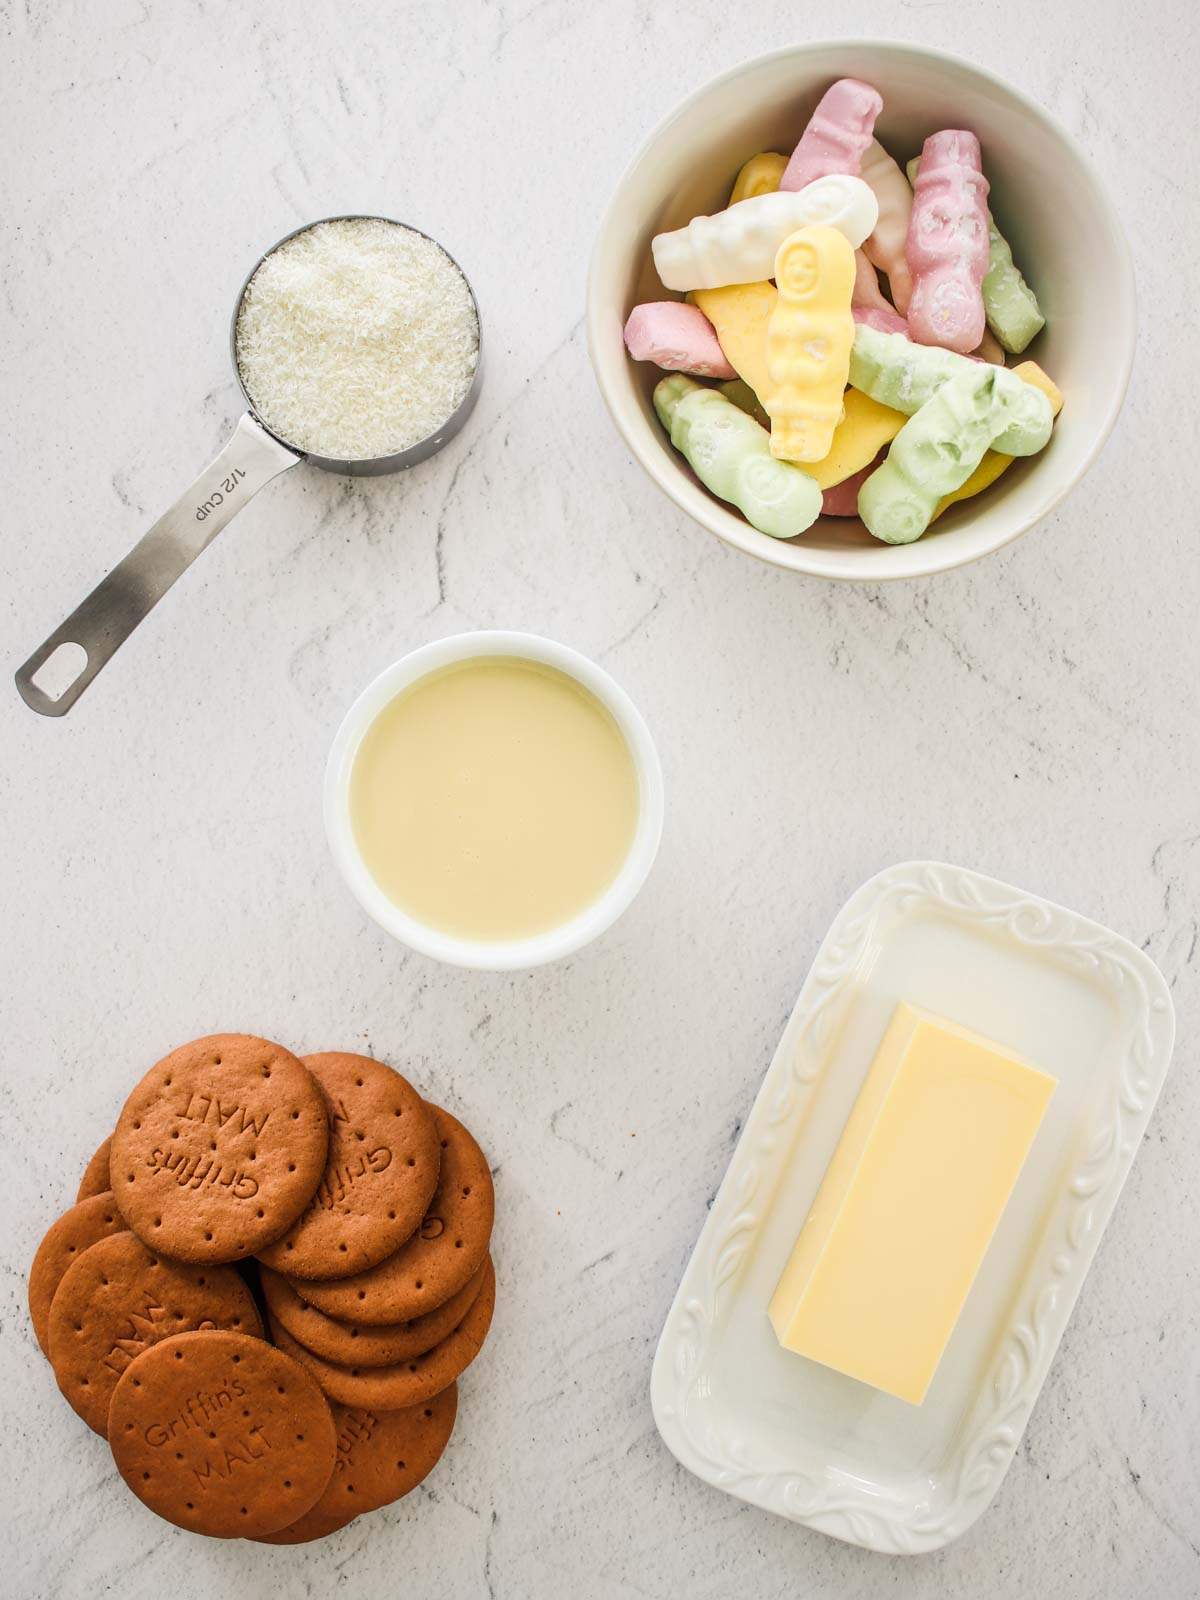 Lolly Cake Ingredients